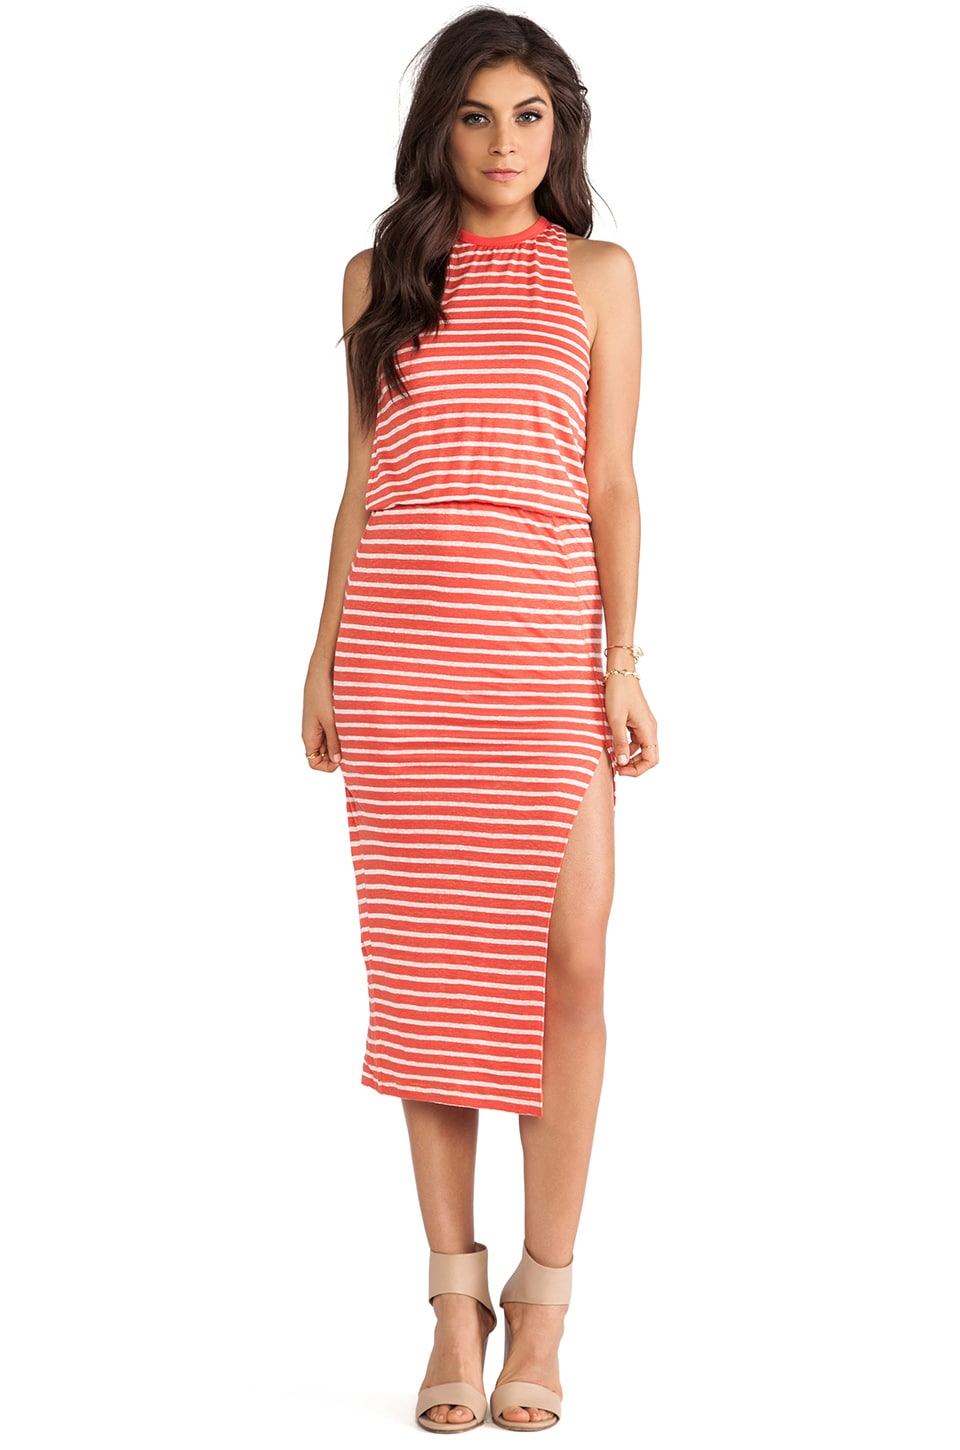 Dolce Vita Calico Dress in Coral & Cream